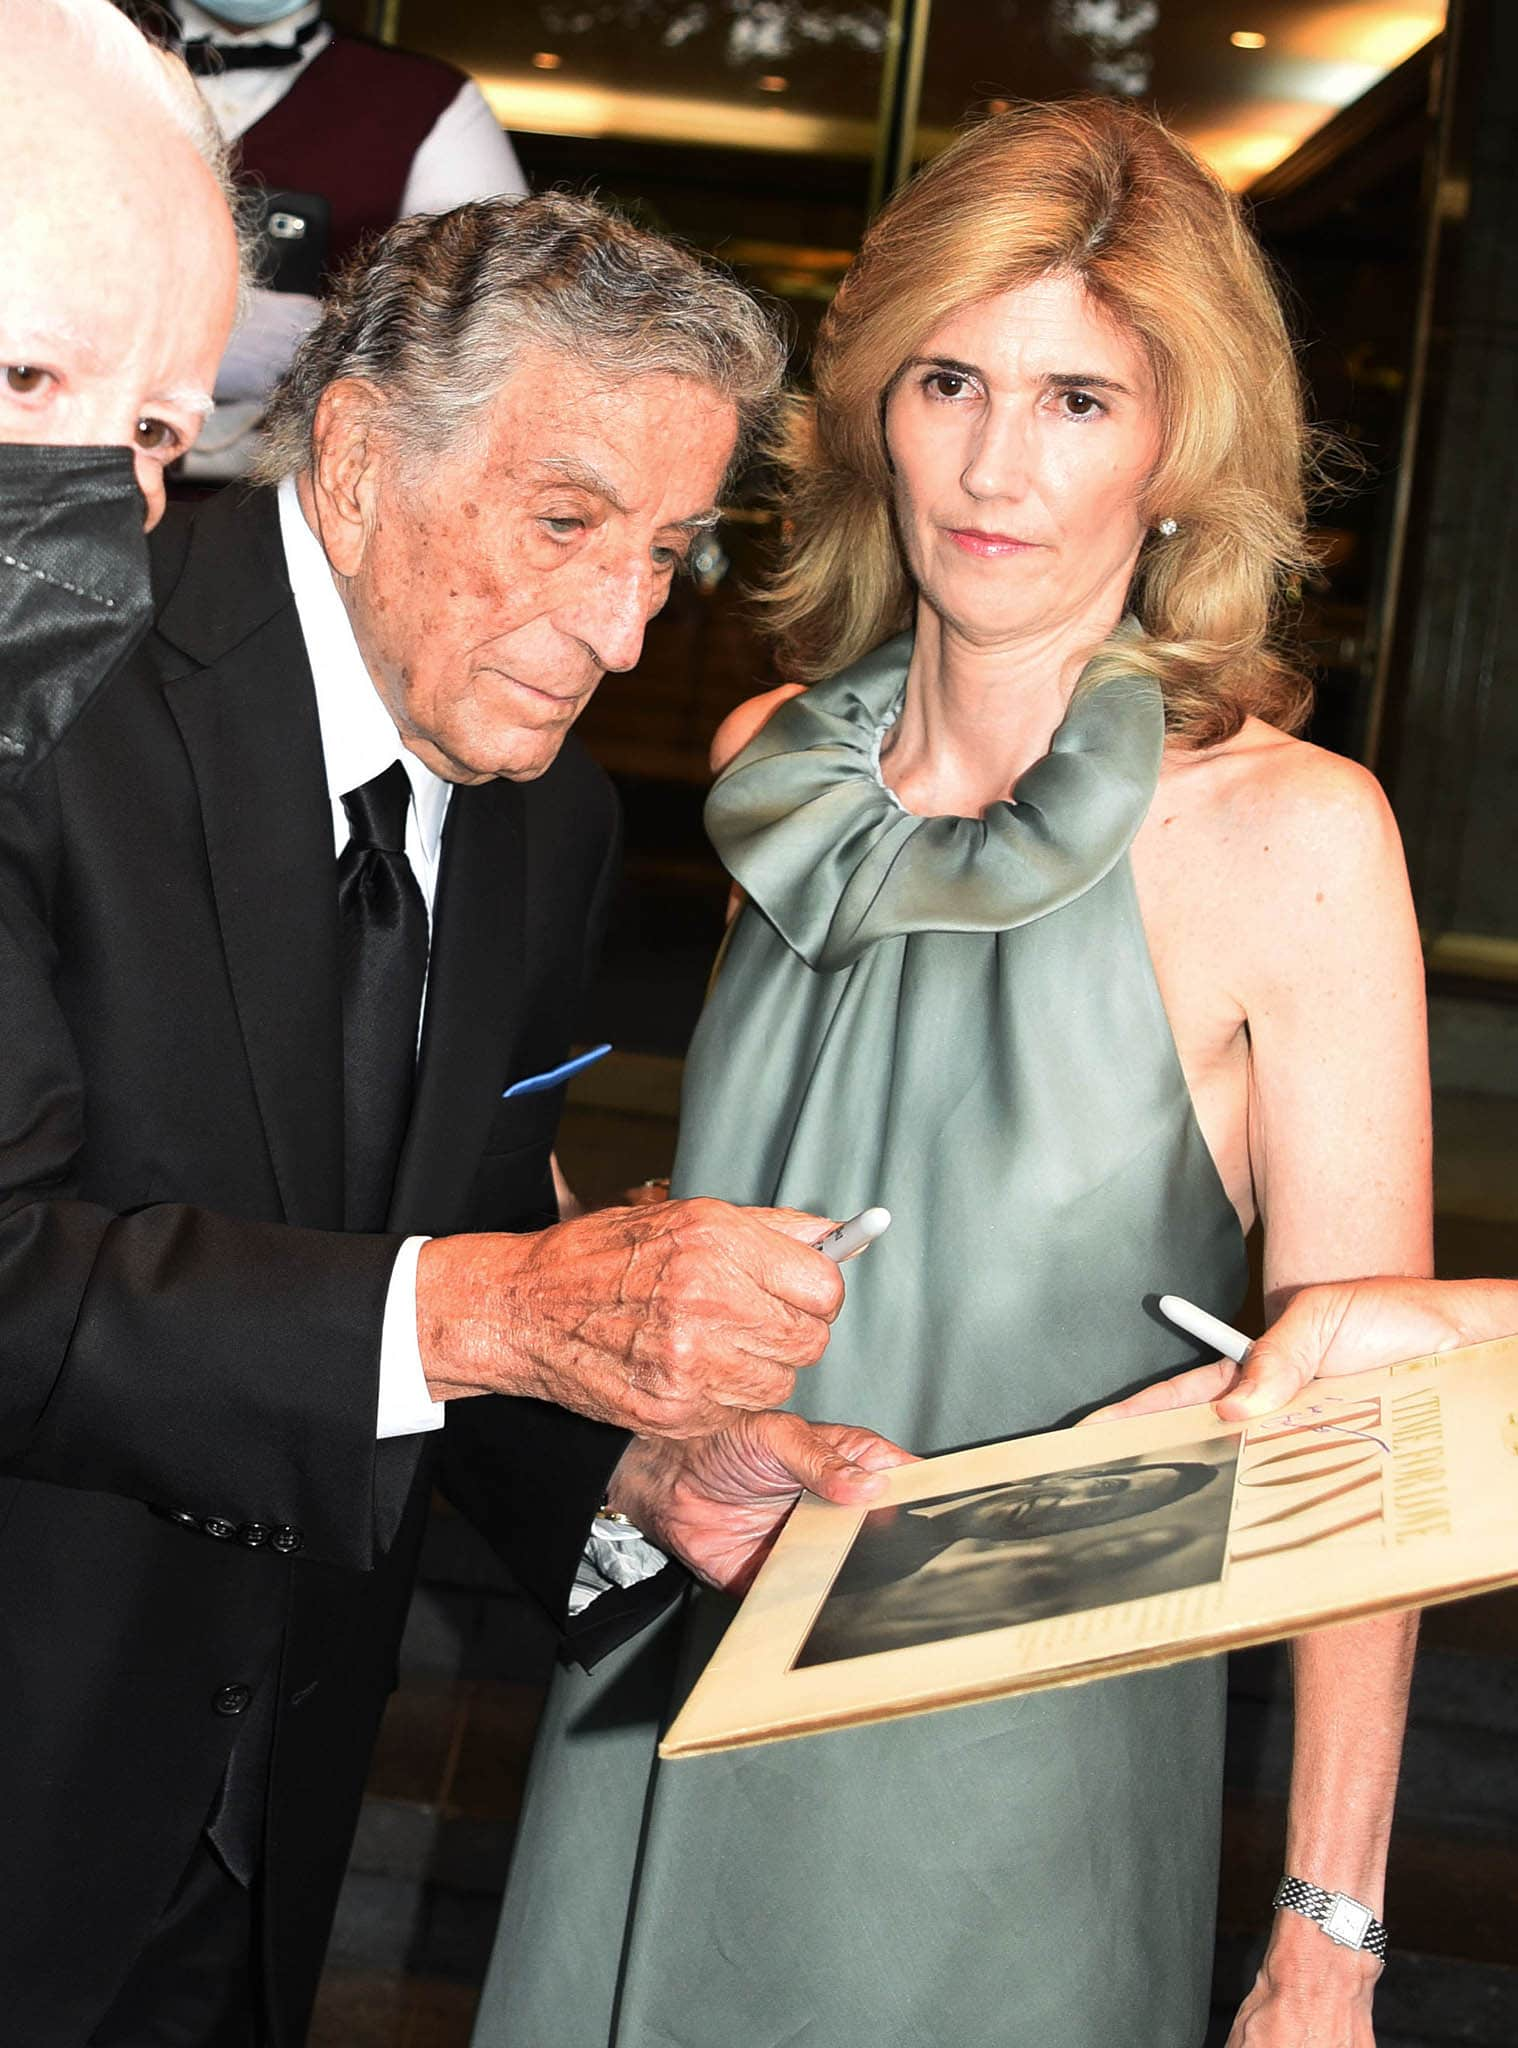 Tony Bennett and his wife Susan Crow leaving their NYC apartment to perform with Lady Gaga at Radio City Music Hall on August 3, 2021